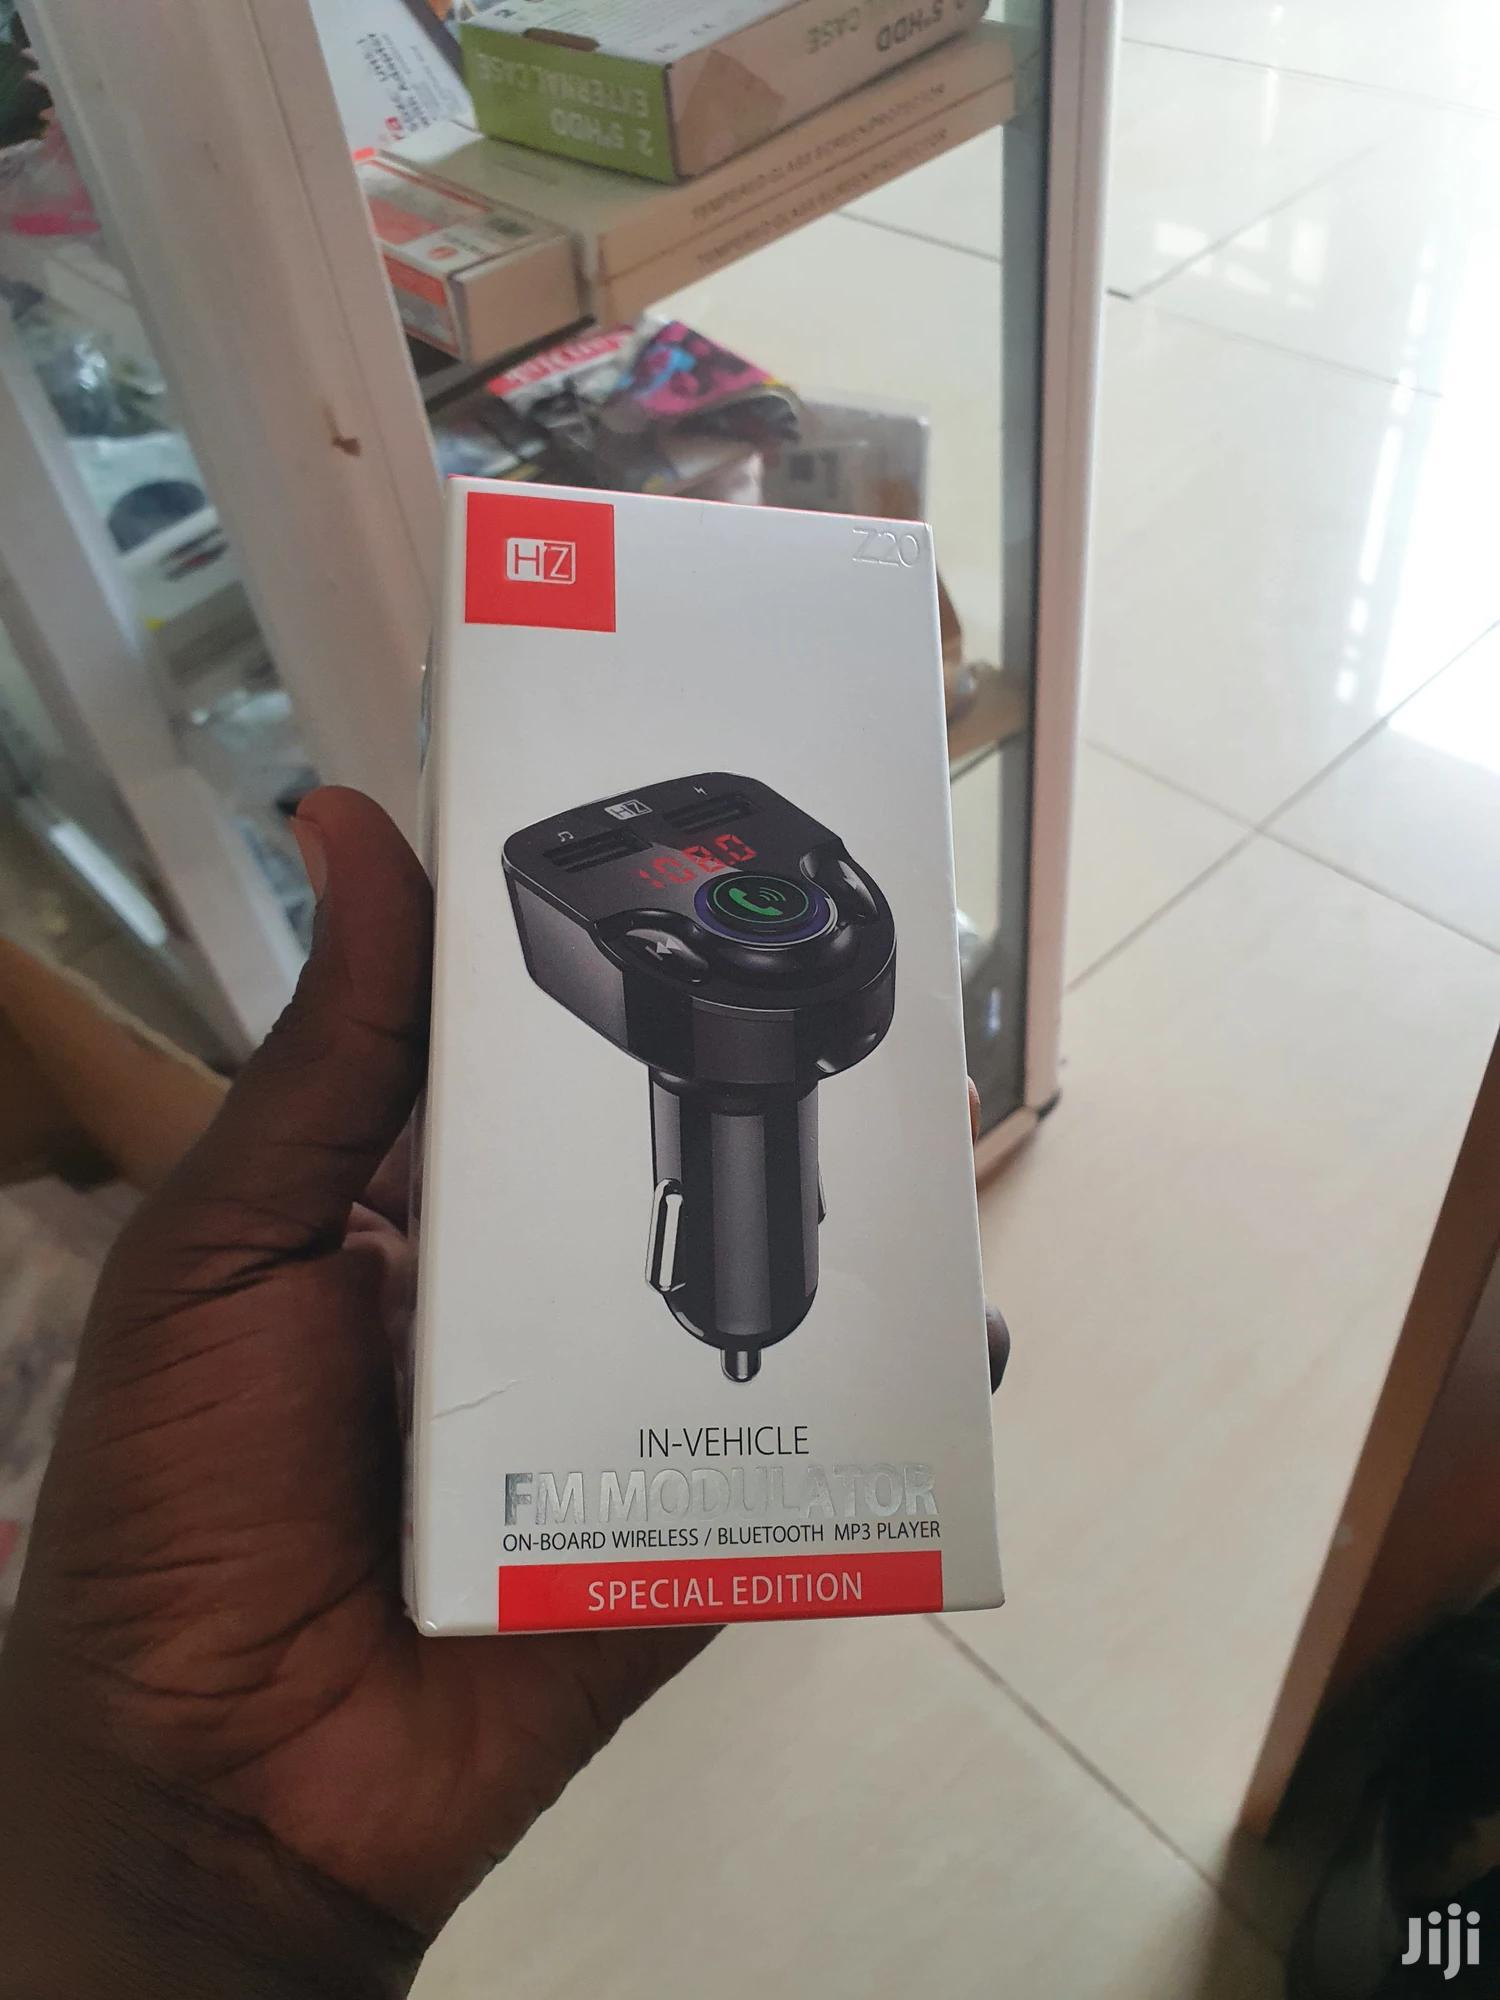 Heatz Z20 Car Bluetooth | Vehicle Parts & Accessories for sale in Ga East Municipal, Greater Accra, Ghana